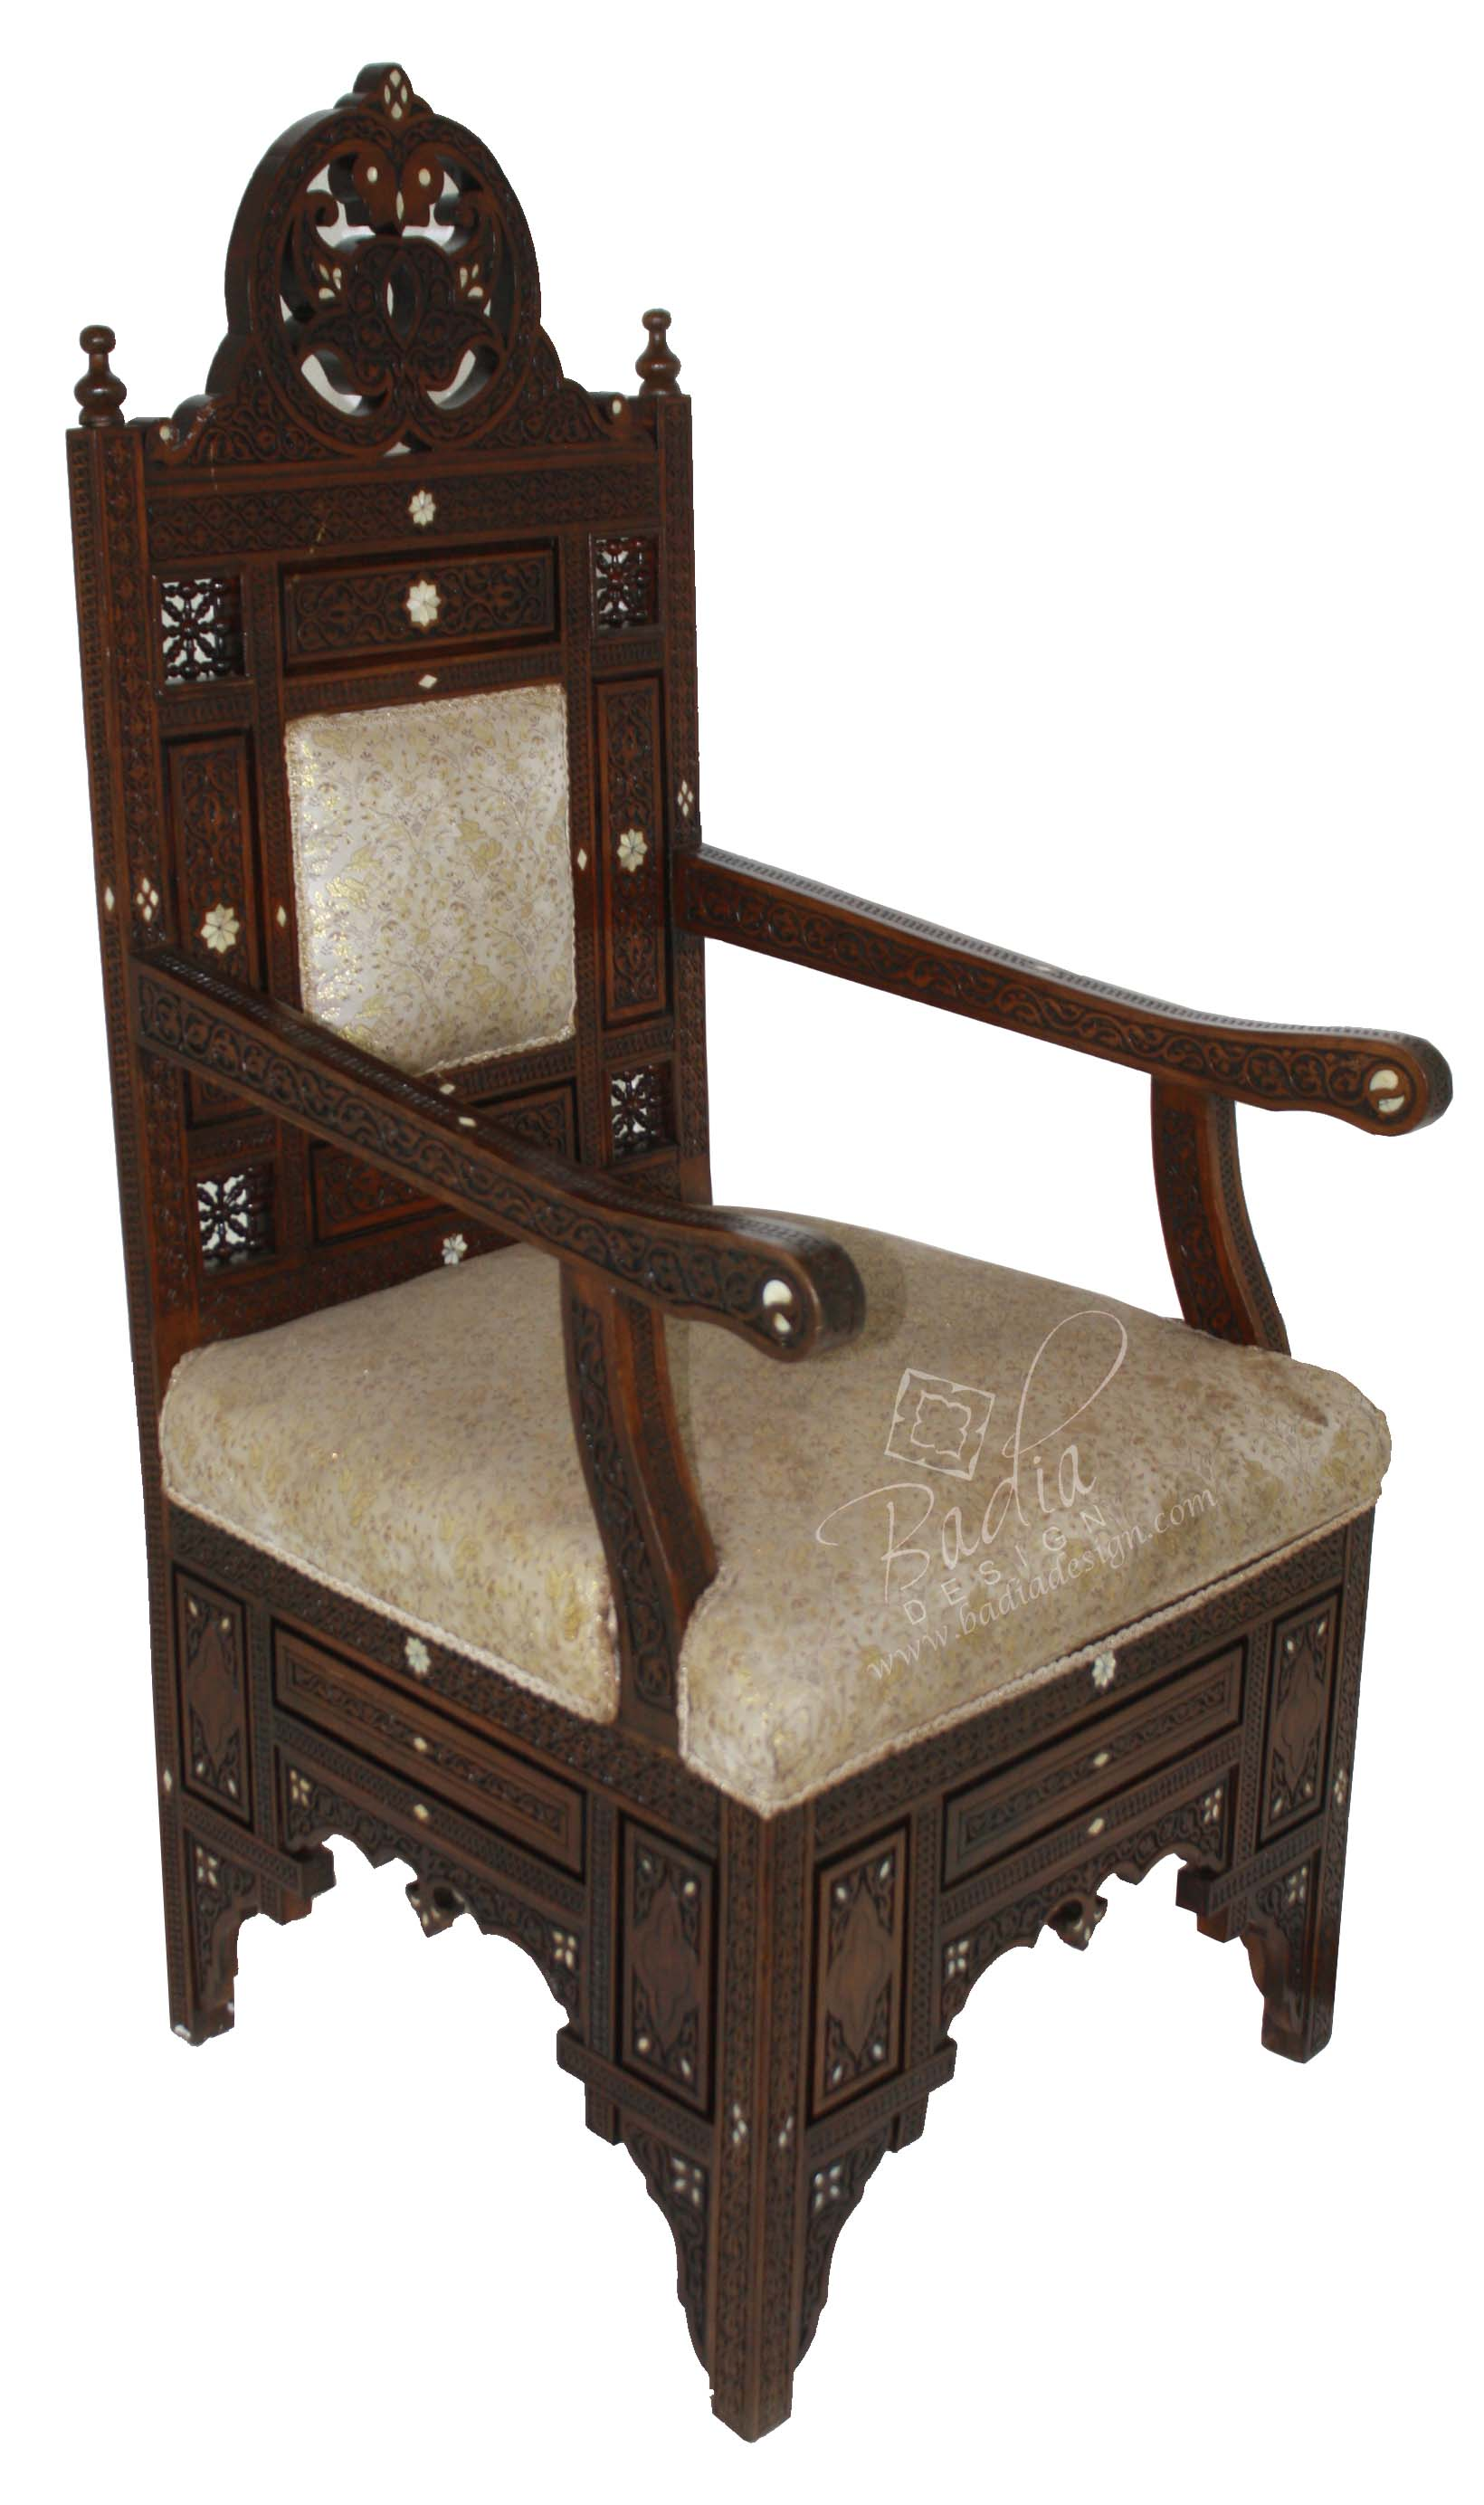 moroccan-mother-of-pearl-white-bone-inlay-chair-mop-ch027-2.jpg